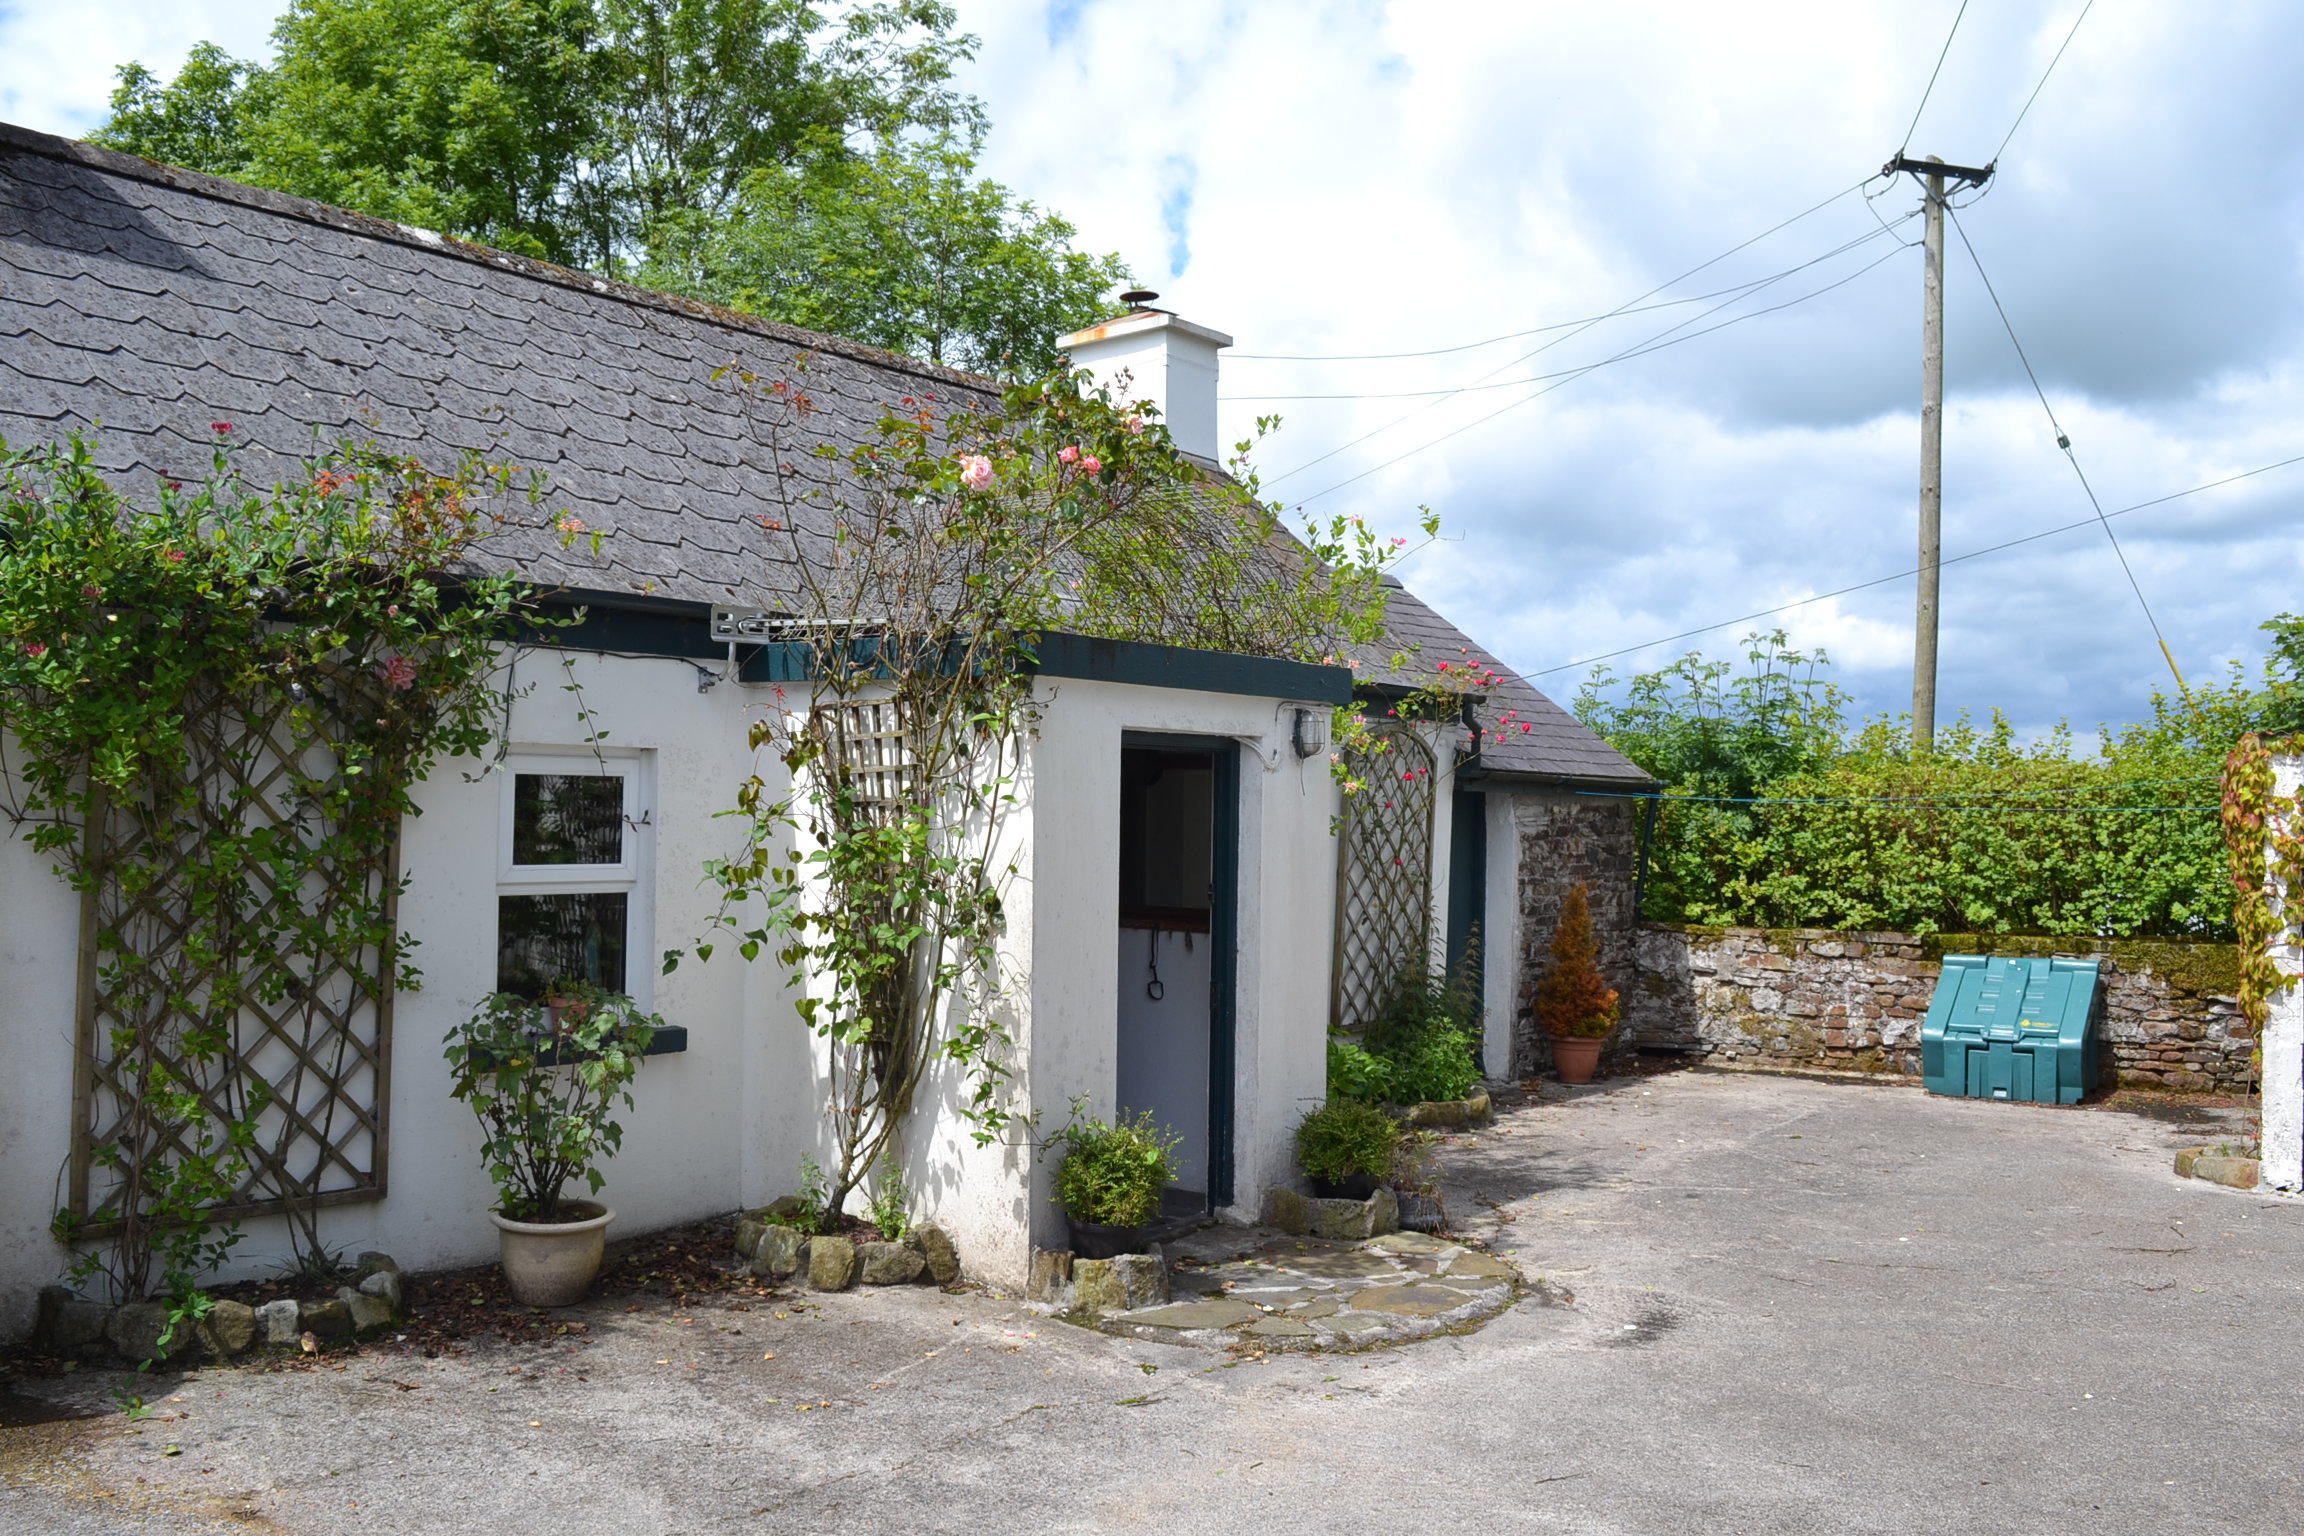 10 Adorable Irish Cottages You Can Buy For A Bargain